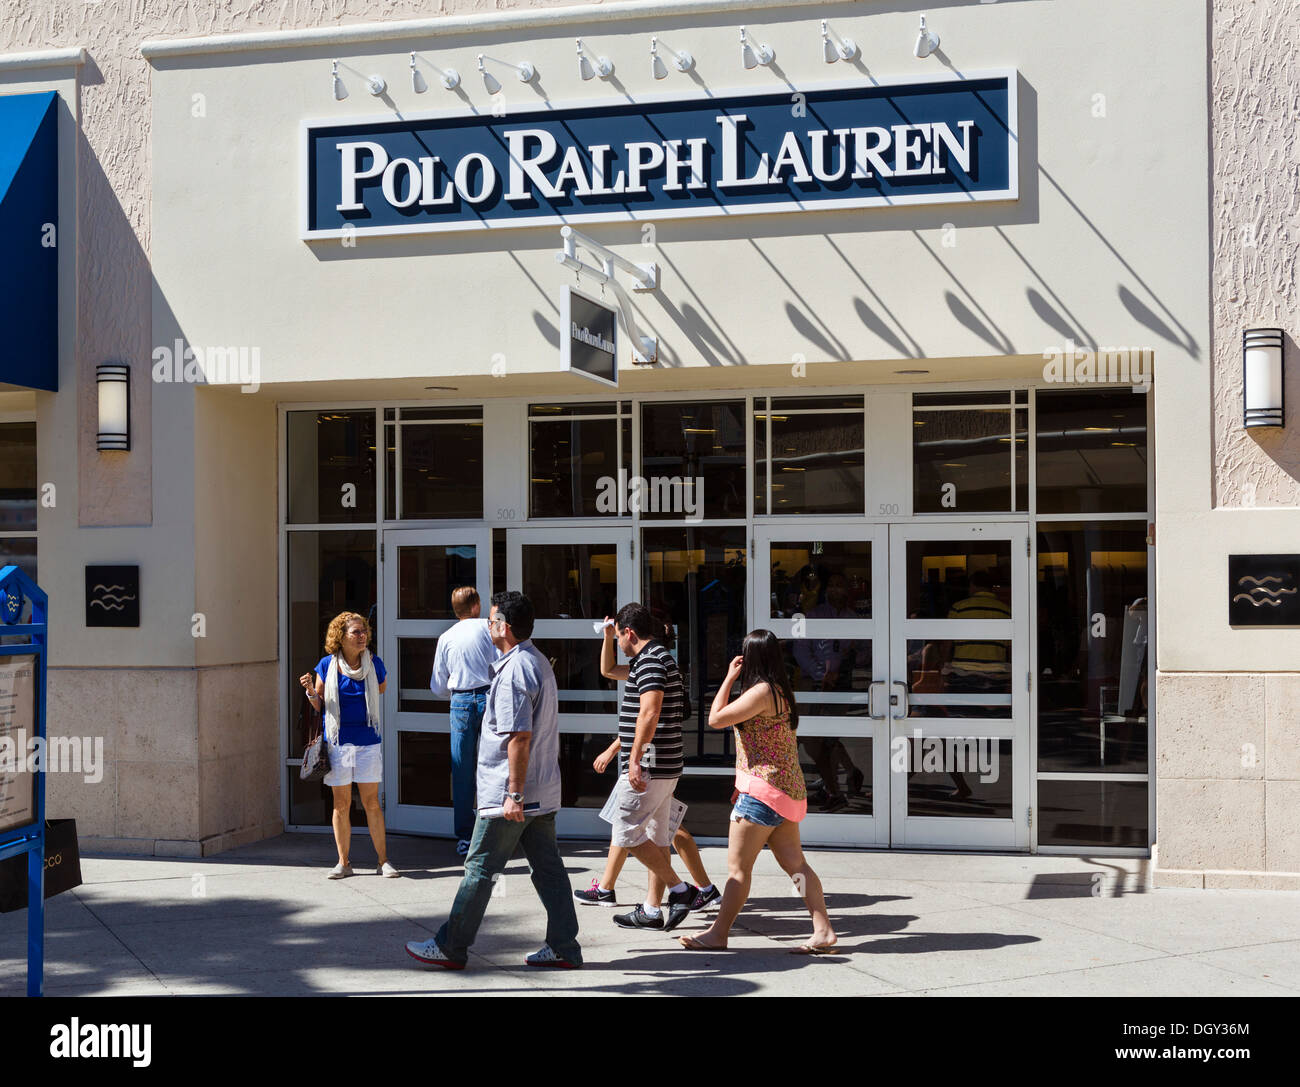 Polo Ralph Lauren Outlet Store presso l Orlando Premium Outlets Mall e83aa6bef286